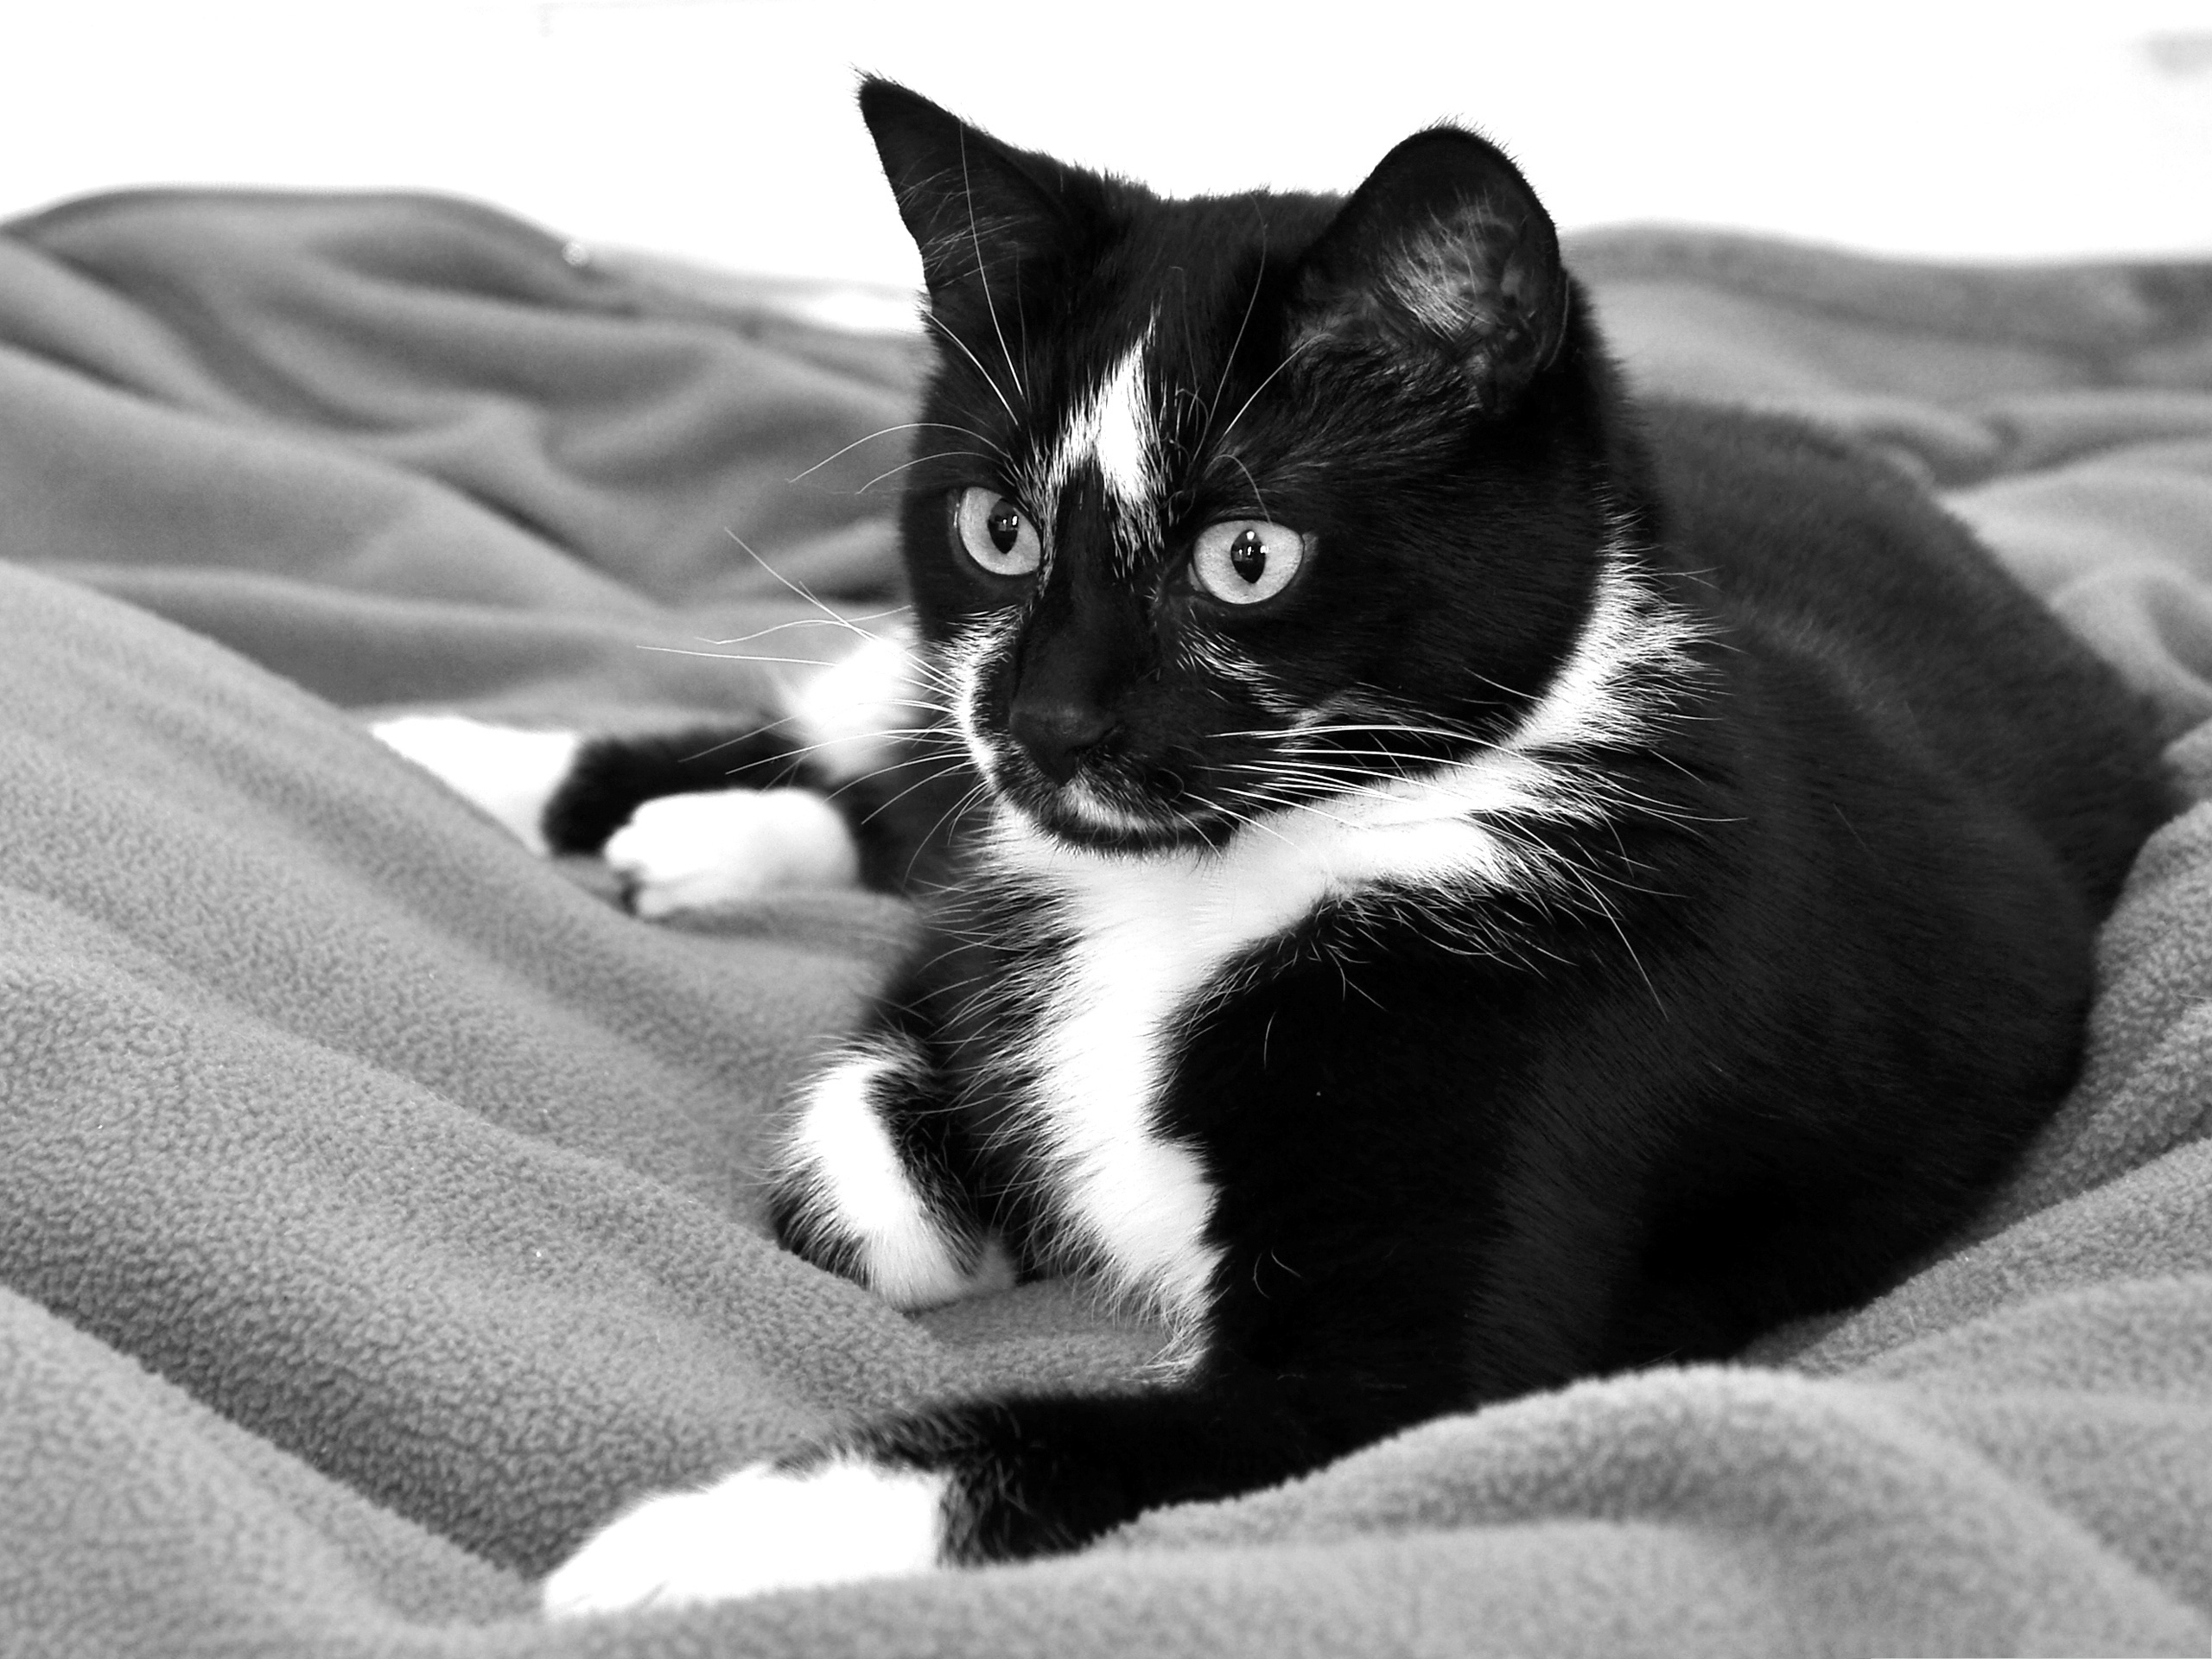 click to free download the wallpaper--Oceiiette Cat Image, Cute Cat Comfortably Lying, Black and White Style 2560X1920 free wallpaper download